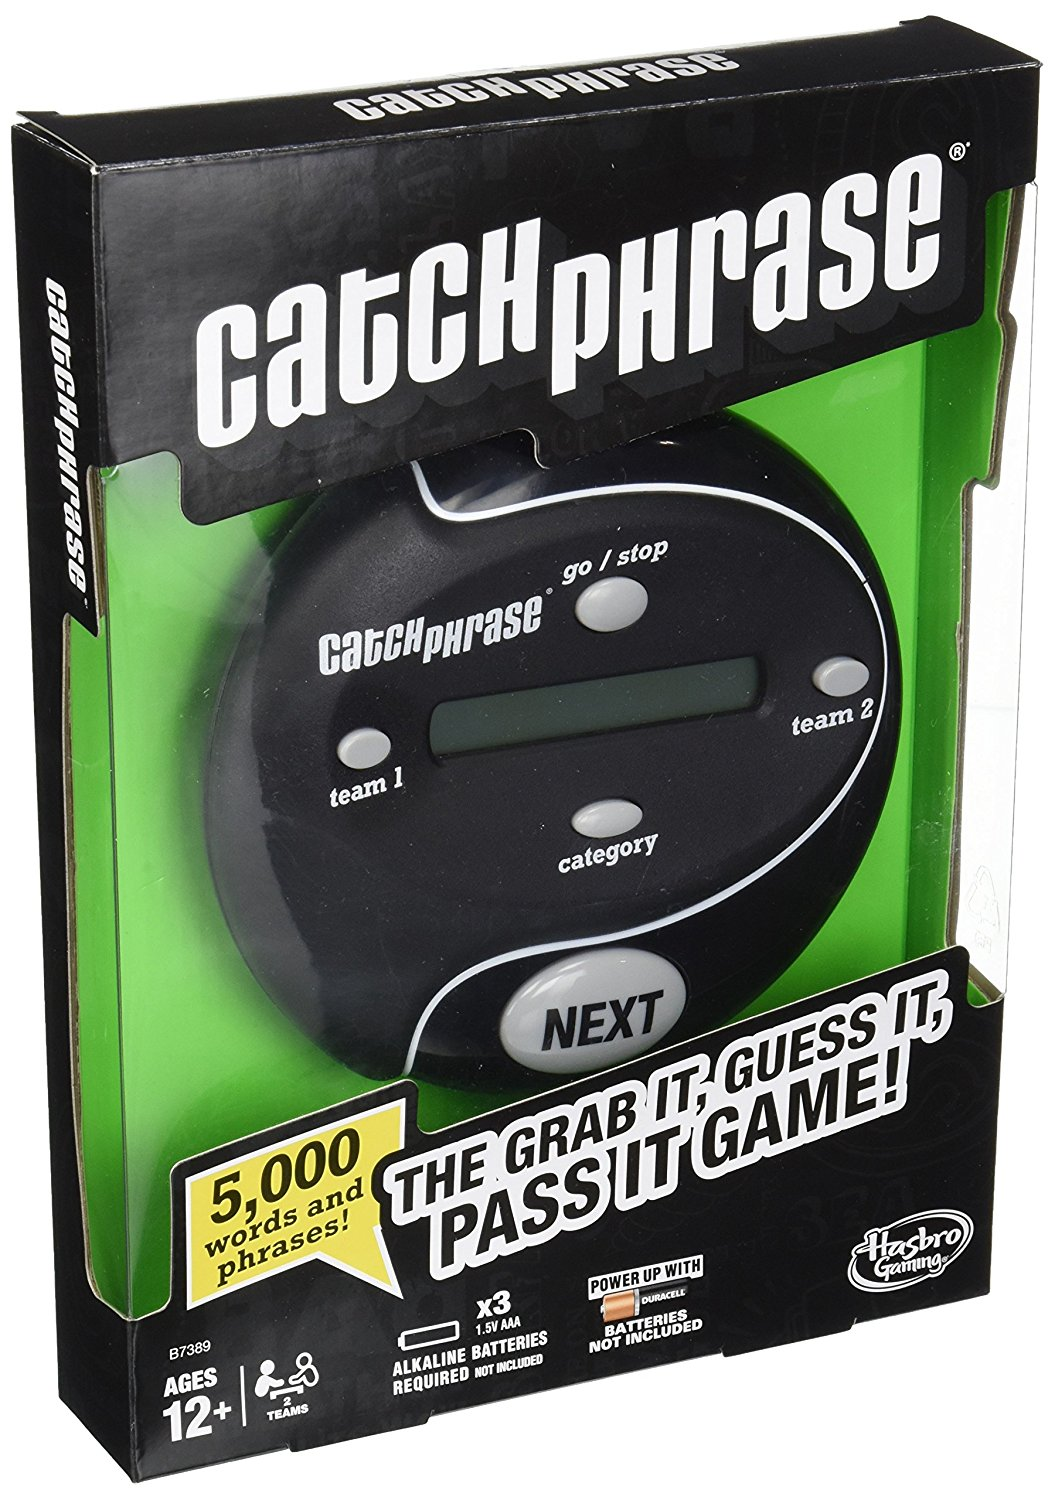 Catch Phrase Game, Wars Friends Exclusive Buzzd Sing Hasbro Song Board Humanity Best Cards... by